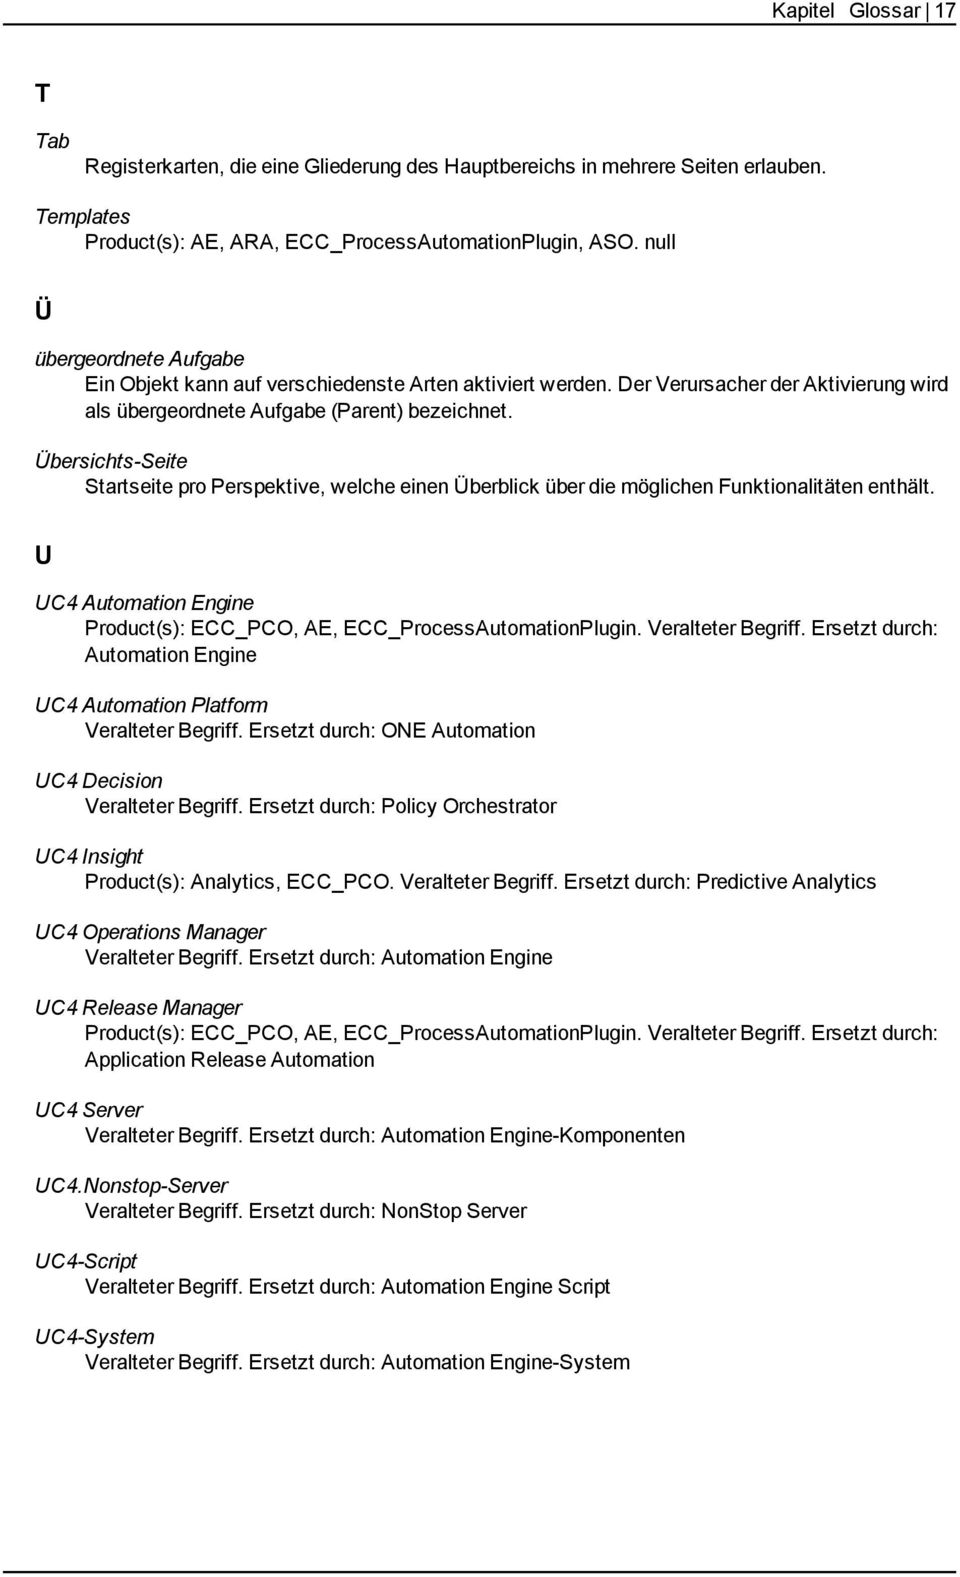 Übersichts-Seite Startseite pro Perspektive, welche einen Überblick über die möglichen Funktionalitäten enthält. U UC4 Automation Engine Product(s): ECC_PCO, AE, ECC_ProcessAutomationPlugin.